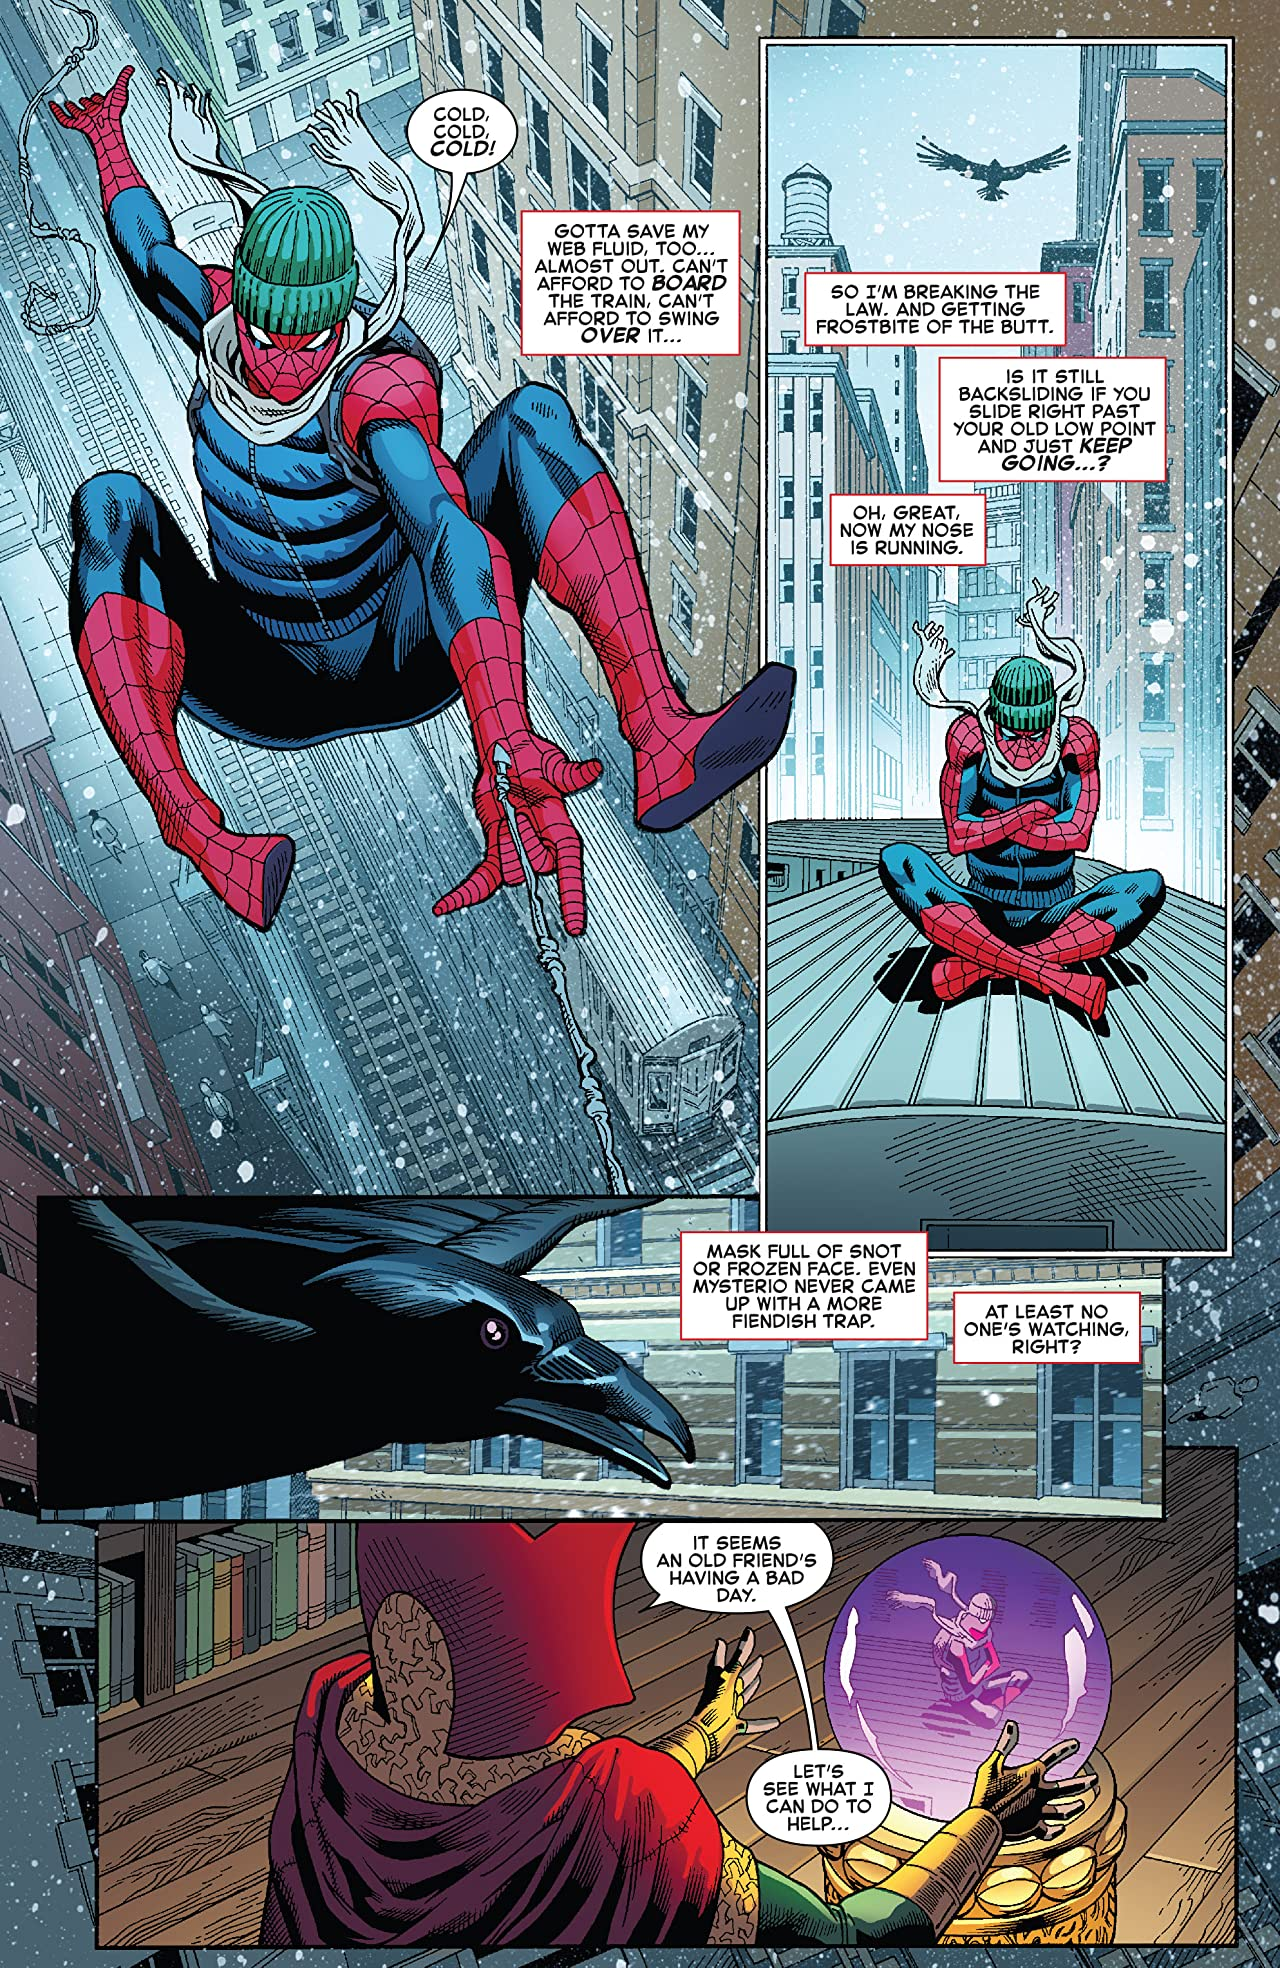 Amazing Spider-Man (2015-) #795